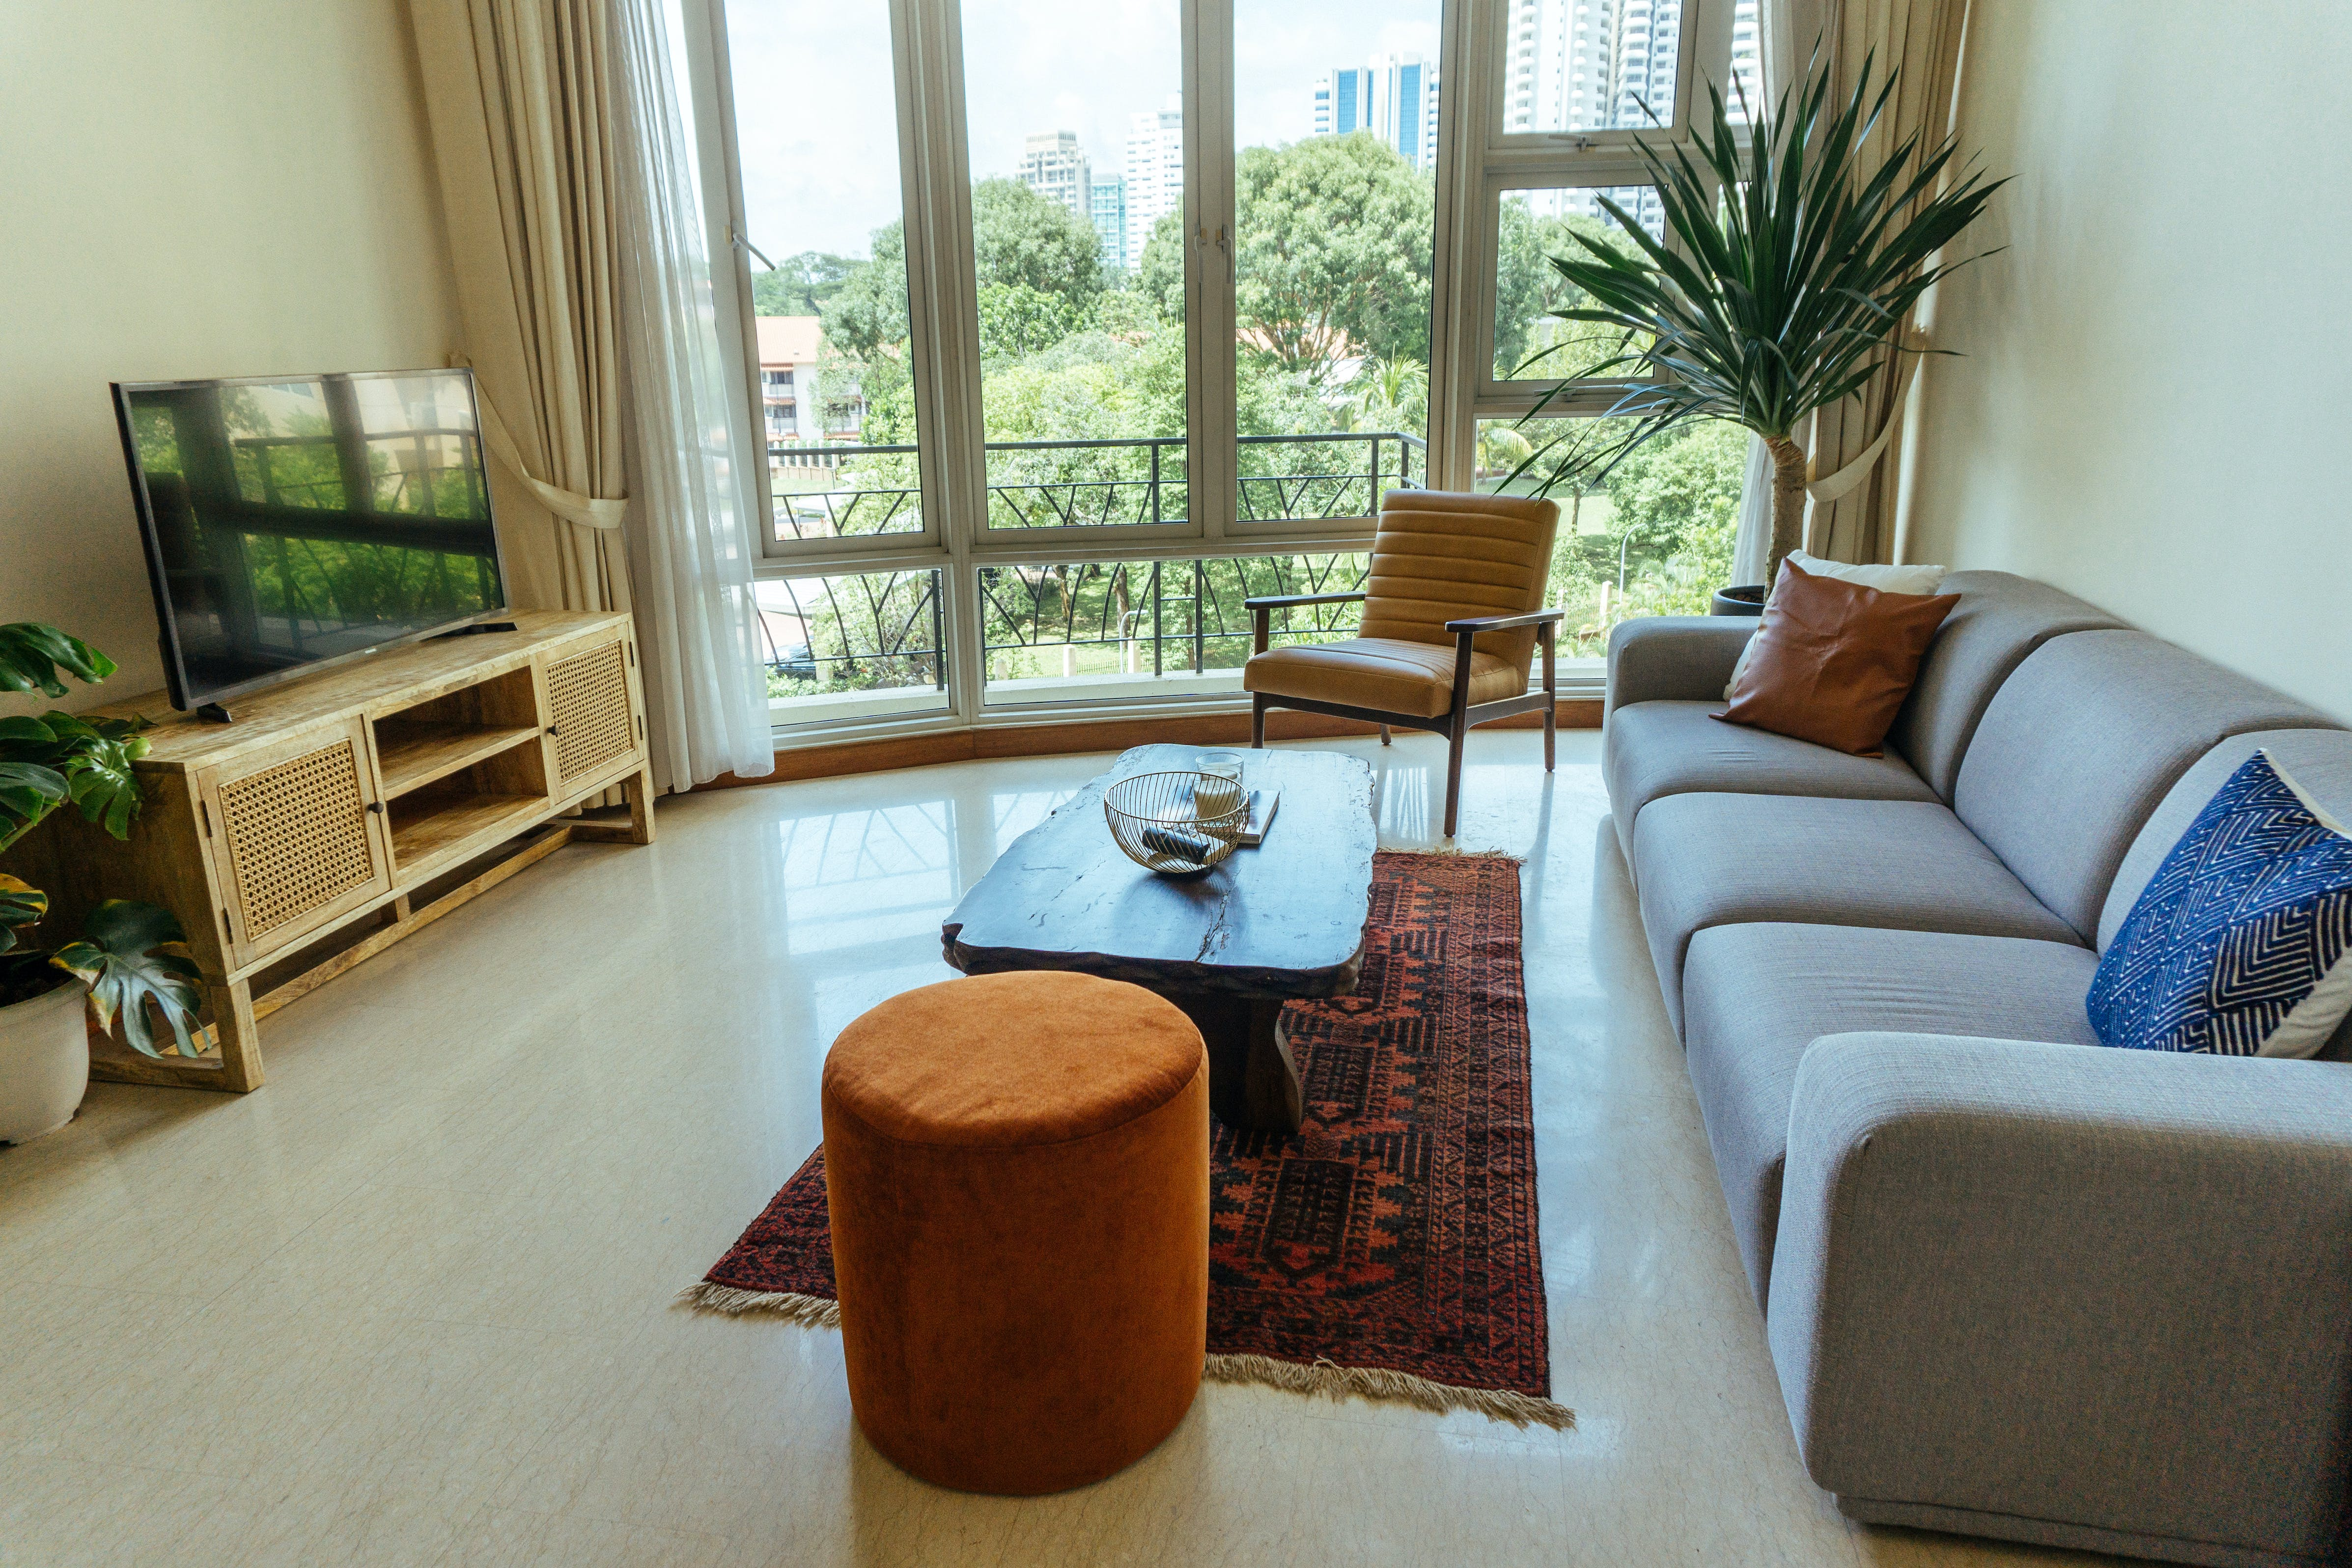 4 Residents   River Valley - Tiong Bahru   Well-Lit Vibrant  Apt. w/ Pool + Gym